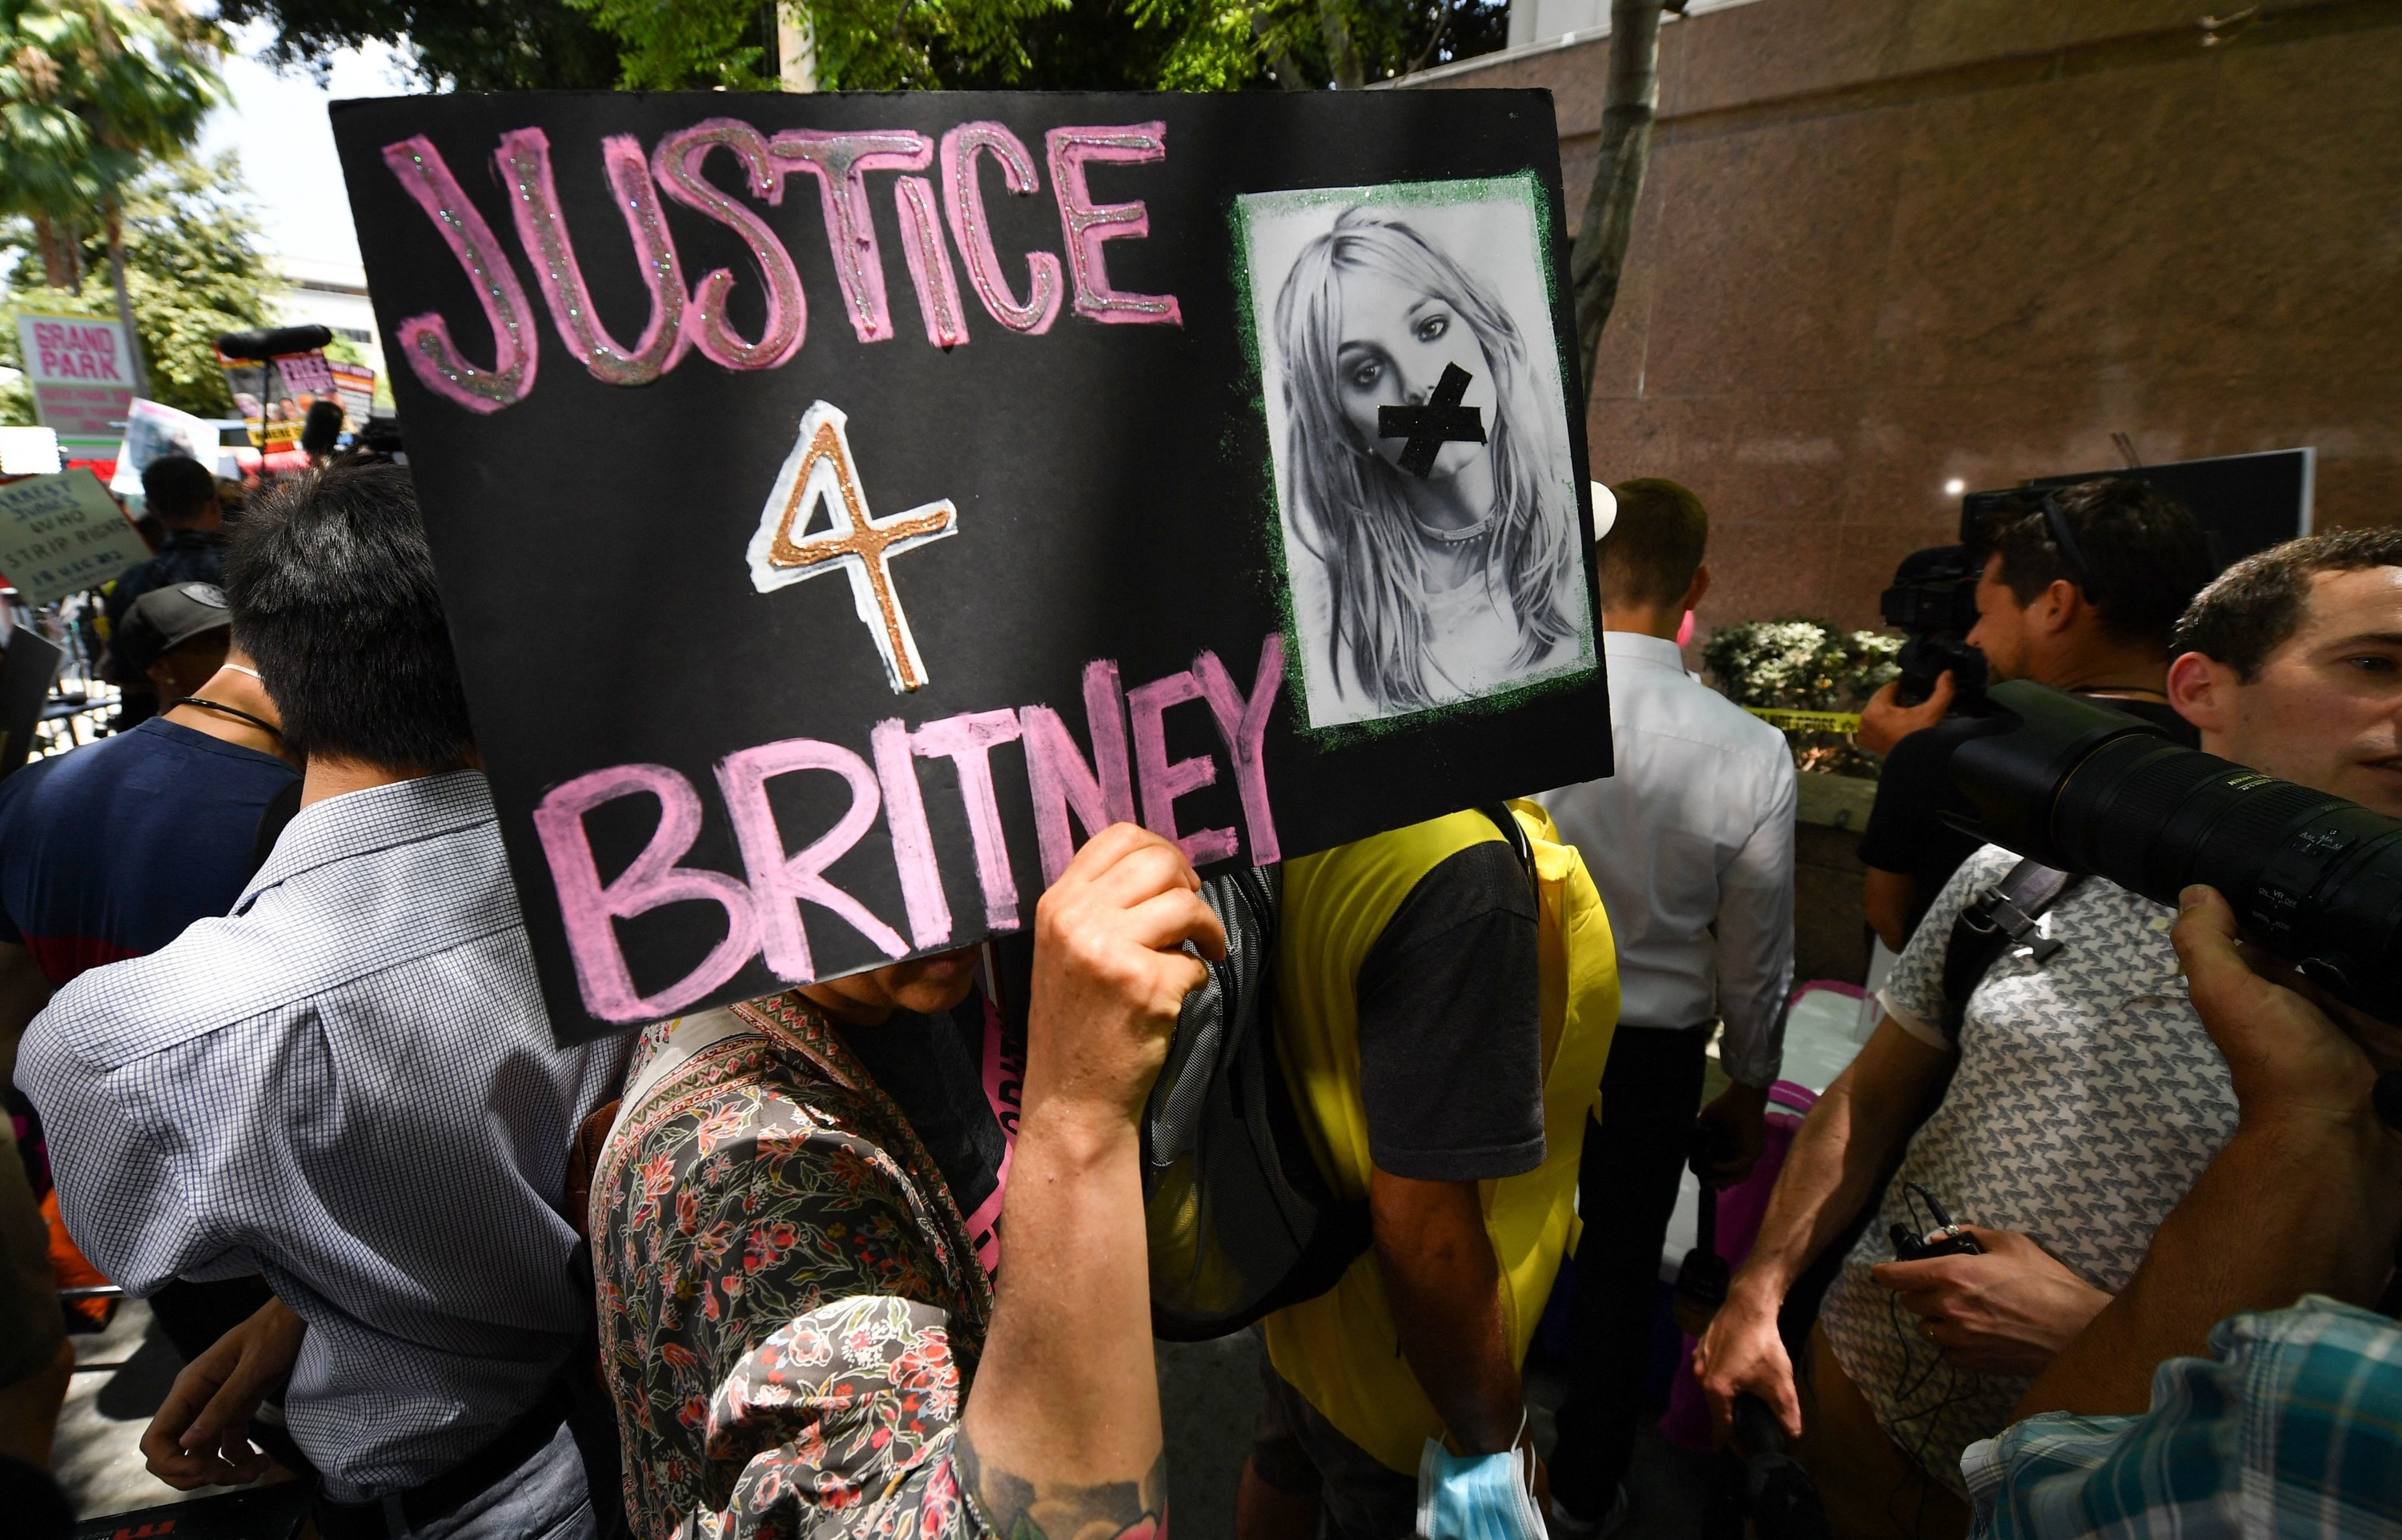 A person holding a 'Justice 4 Britney' sign